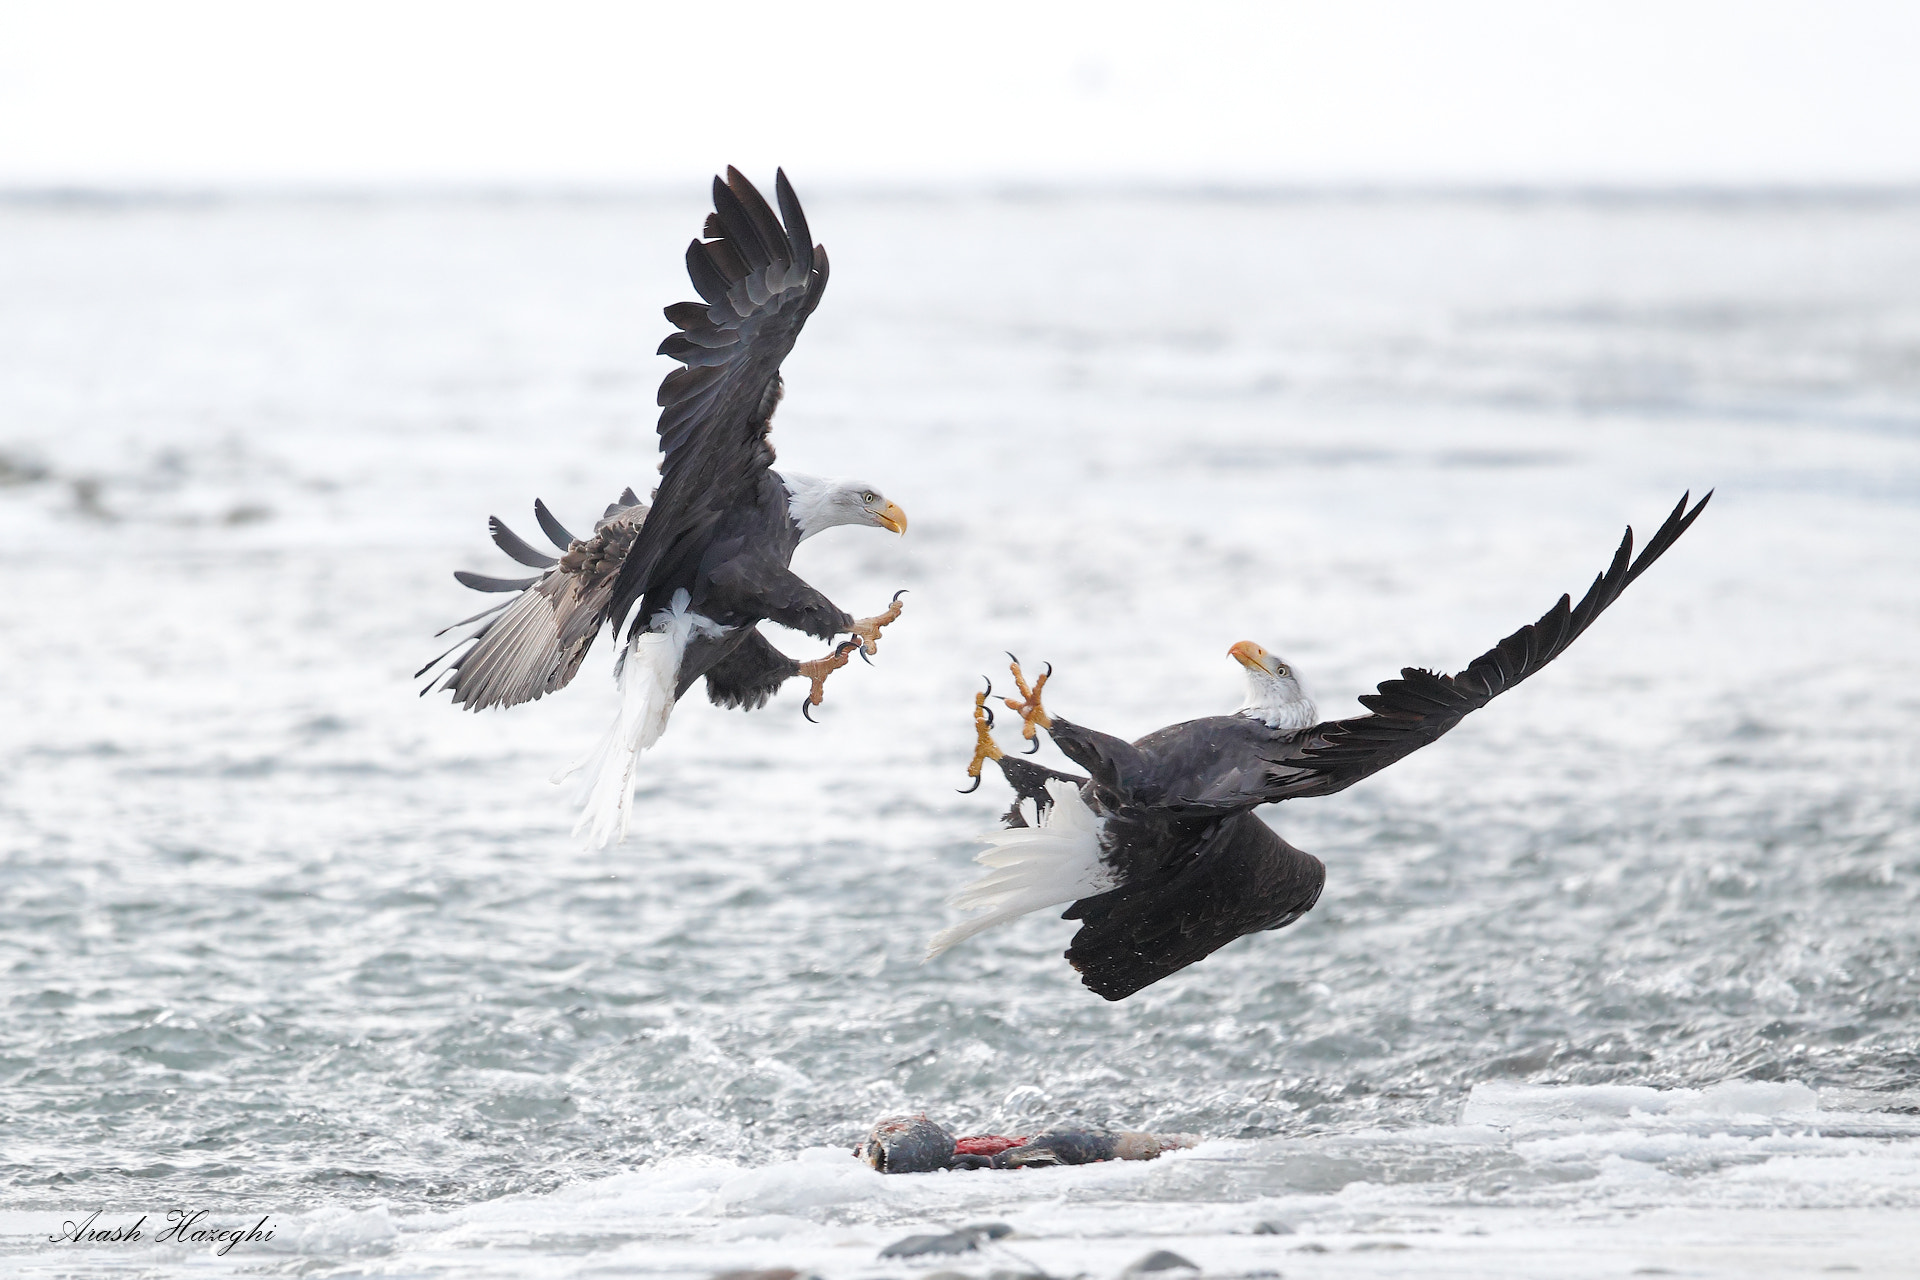 Photograph Fight over fish by Ari Hazeghi on 500px